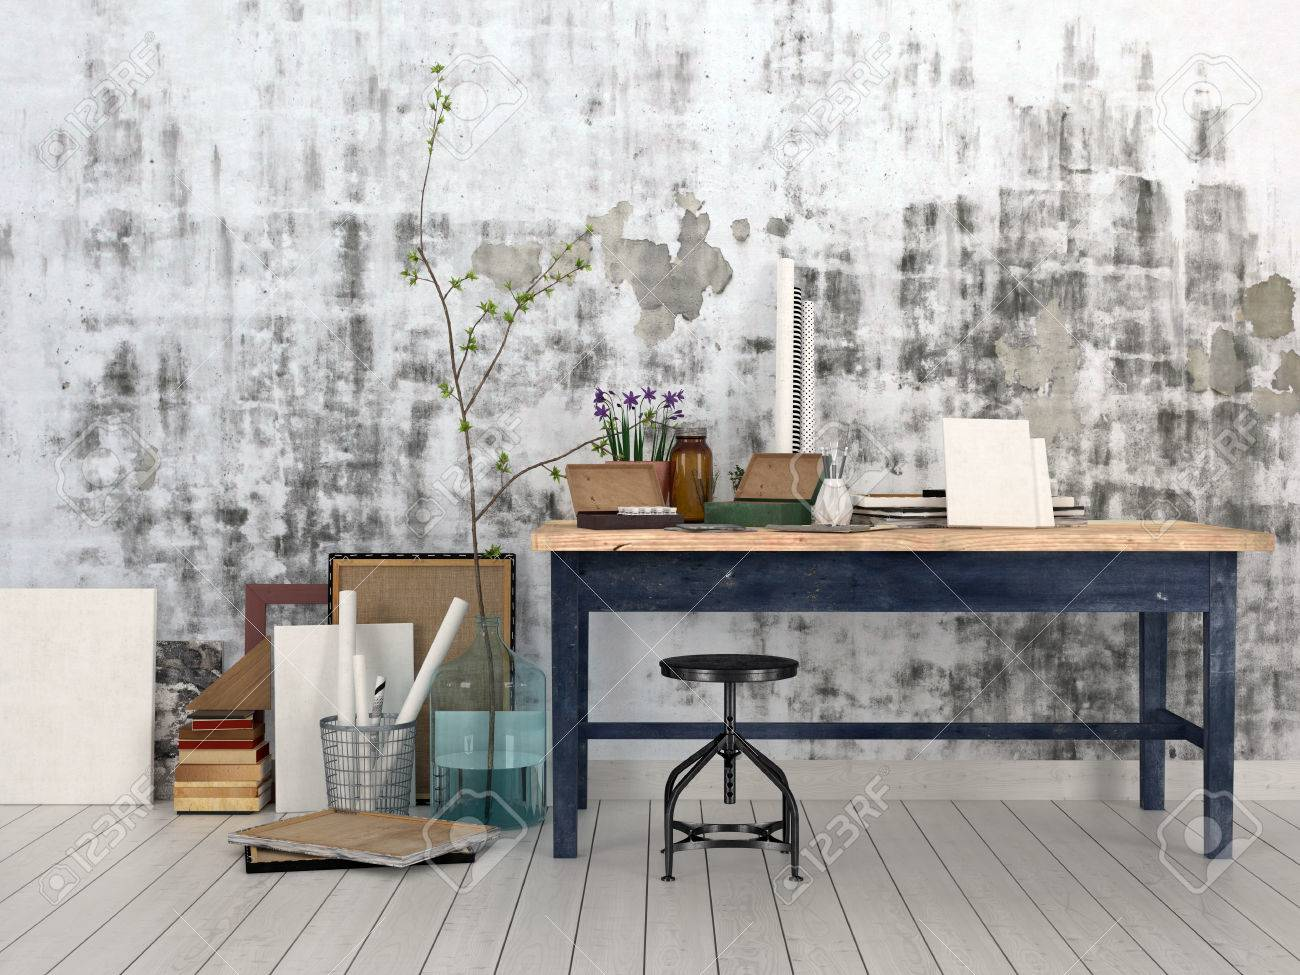 Interior Design Supplies interior of an artist or designer studio with blank canvasses